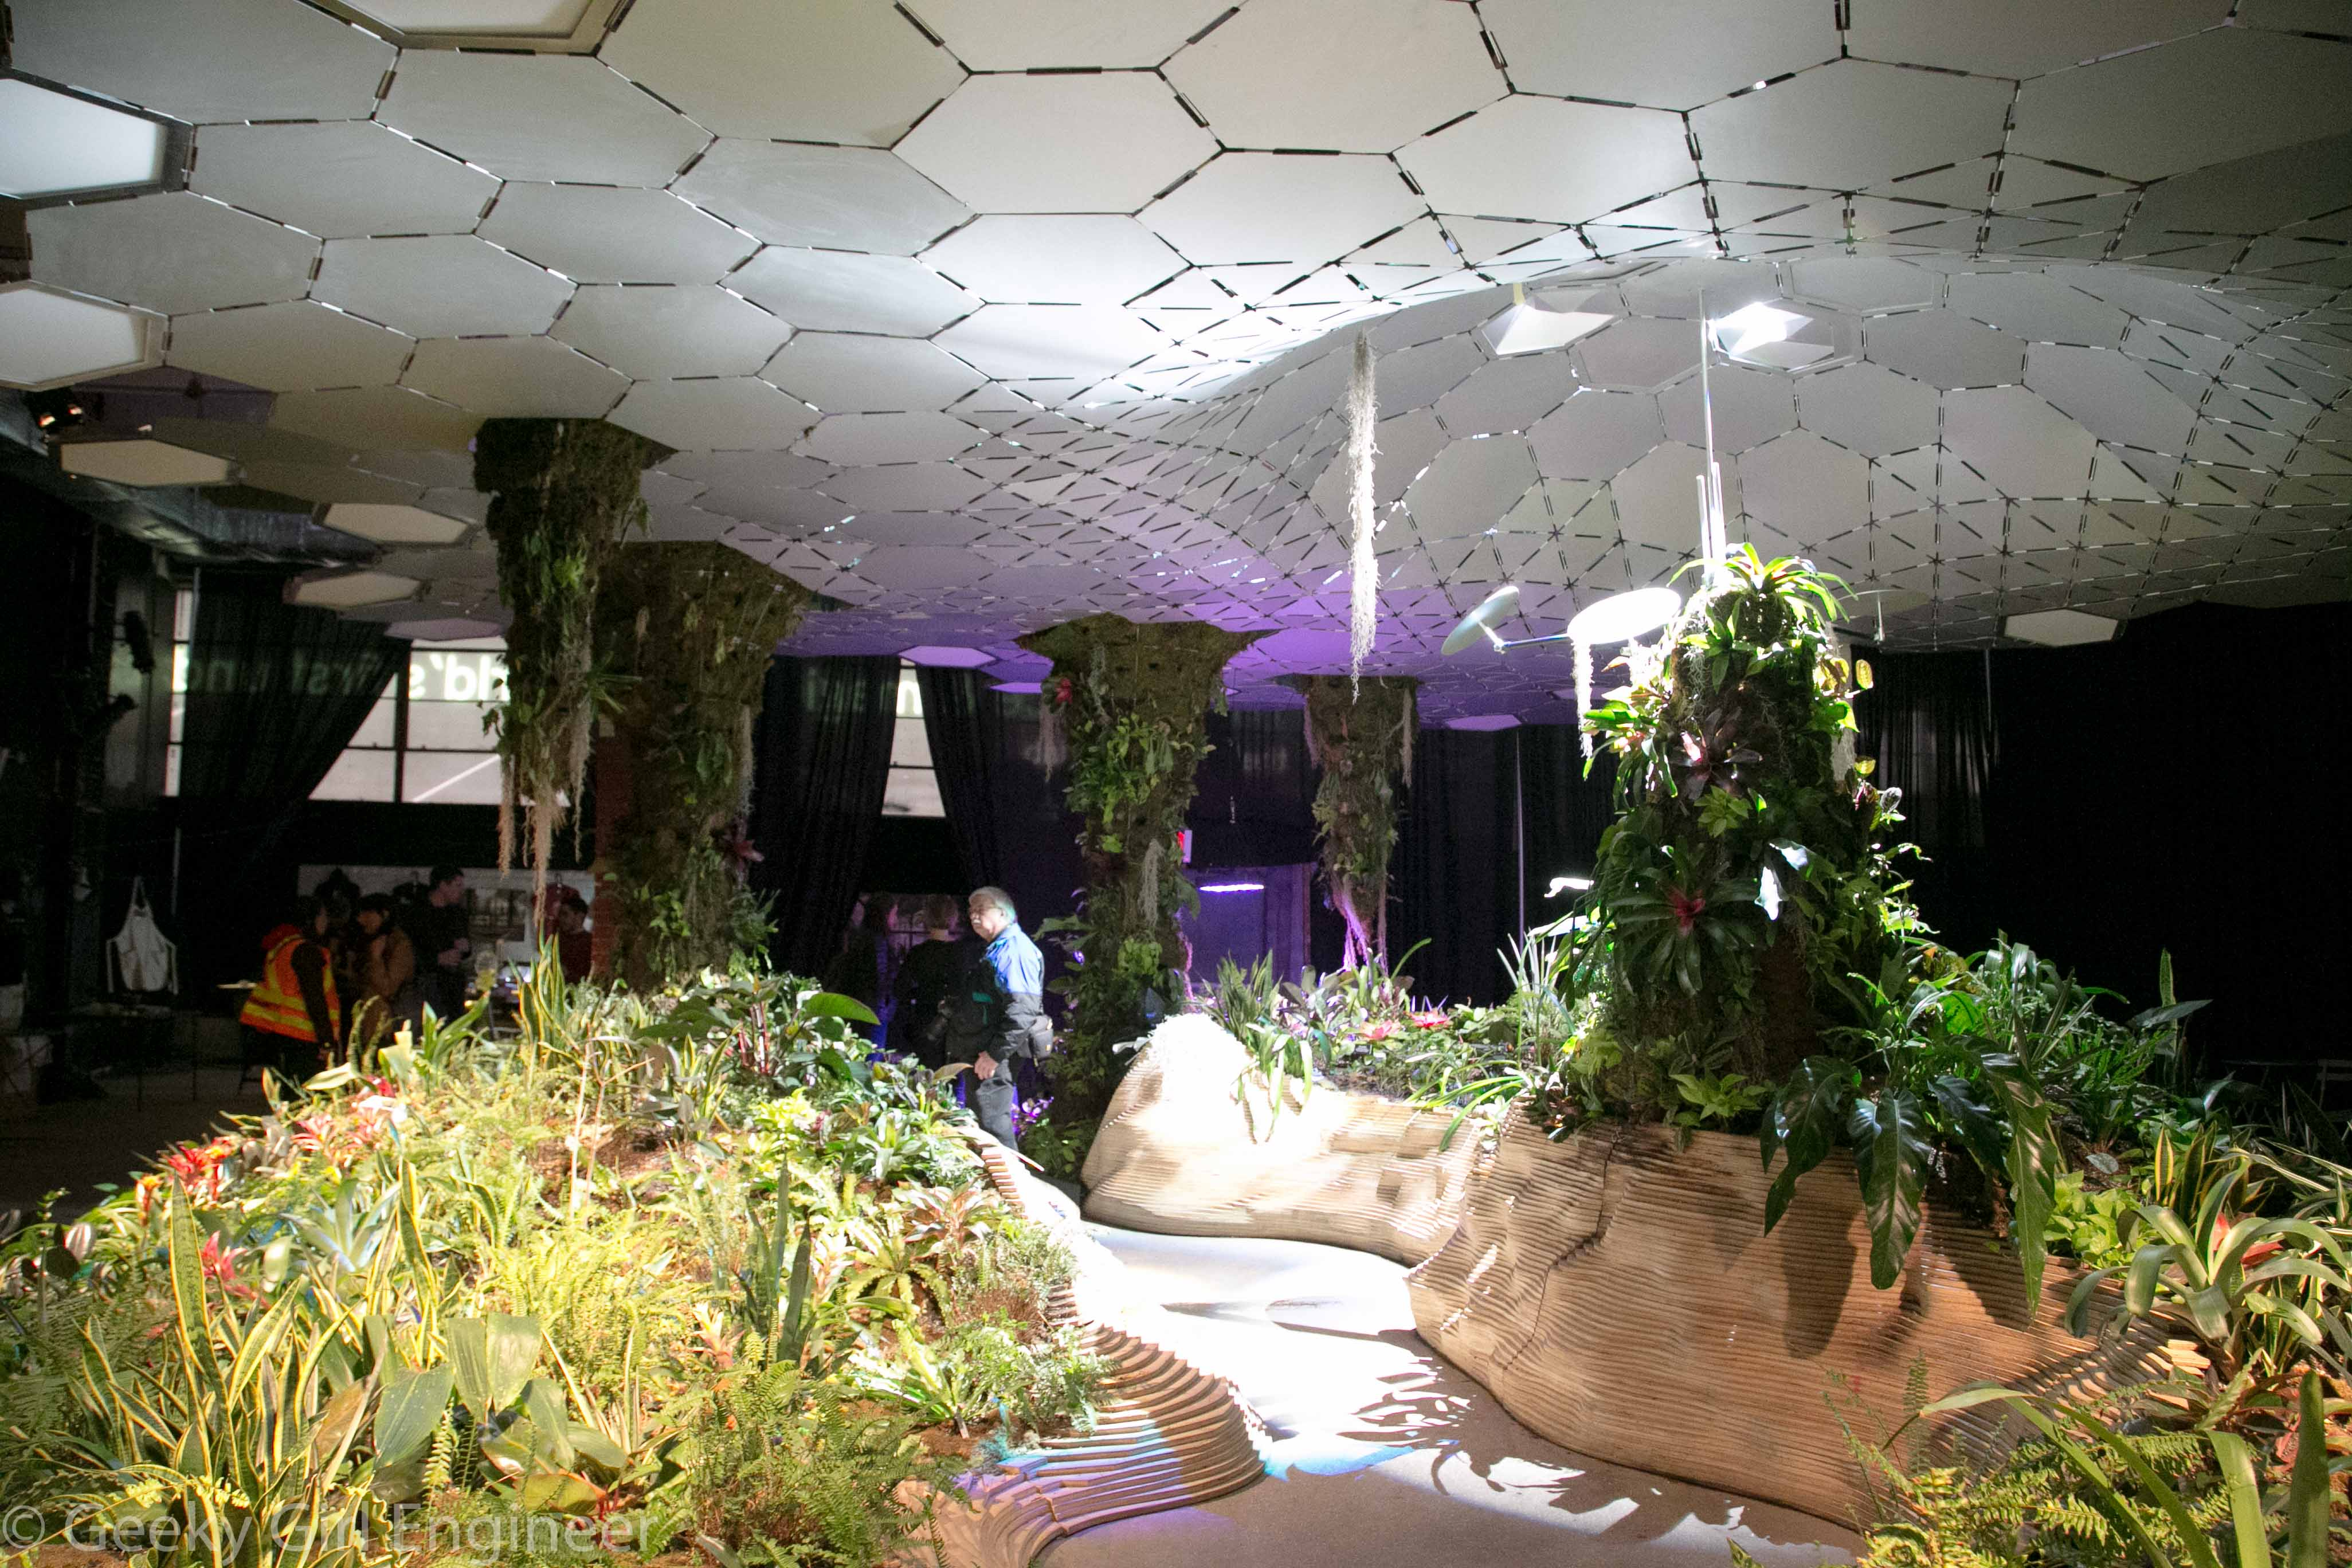 Display of plants, including vertical plant elements, and ceiling reflecting sunlight